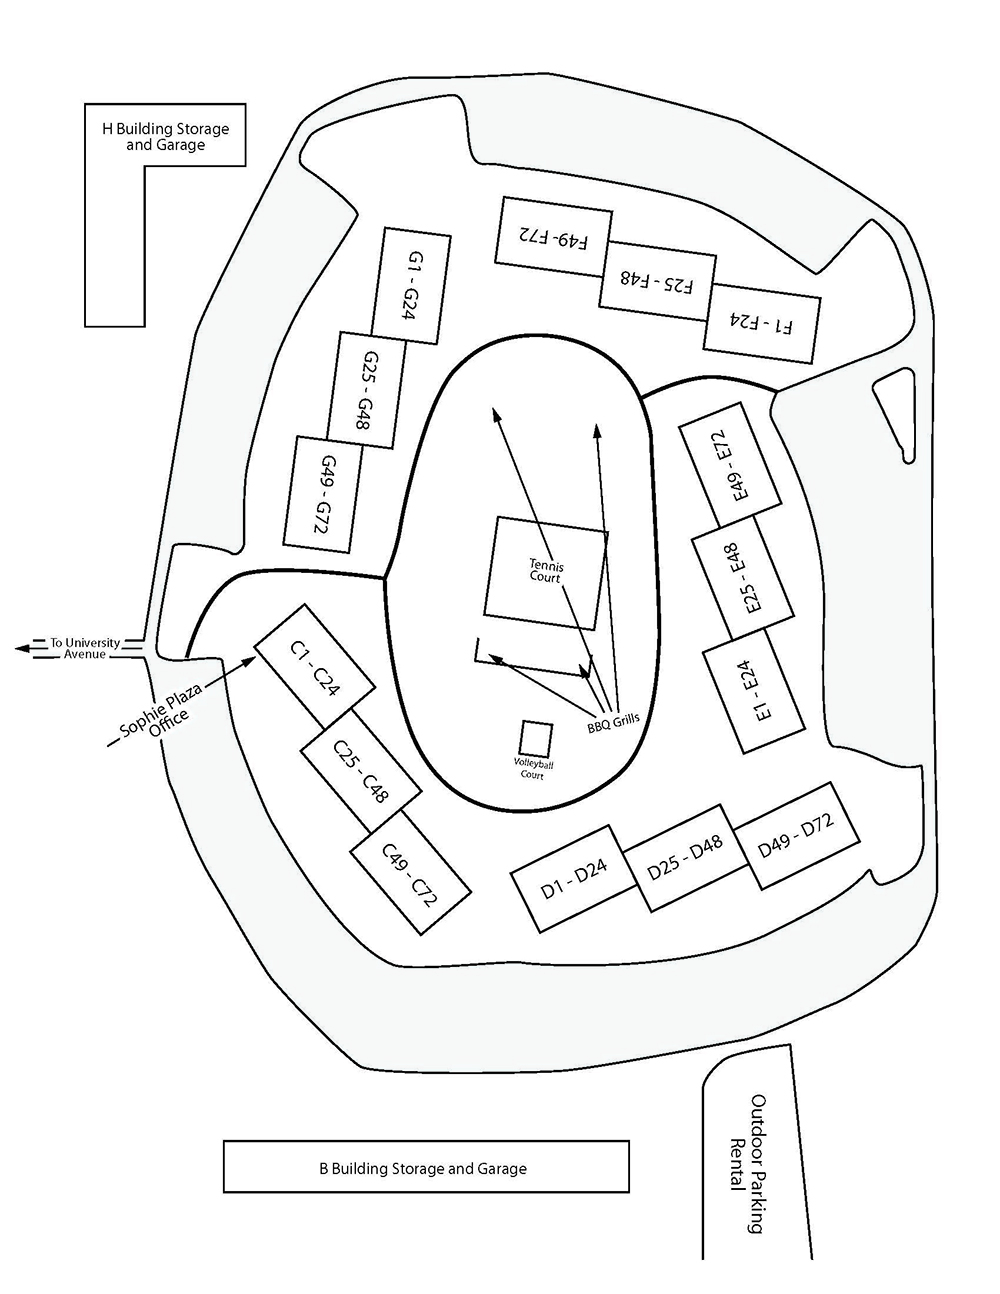 Sophie Plaza Property Map